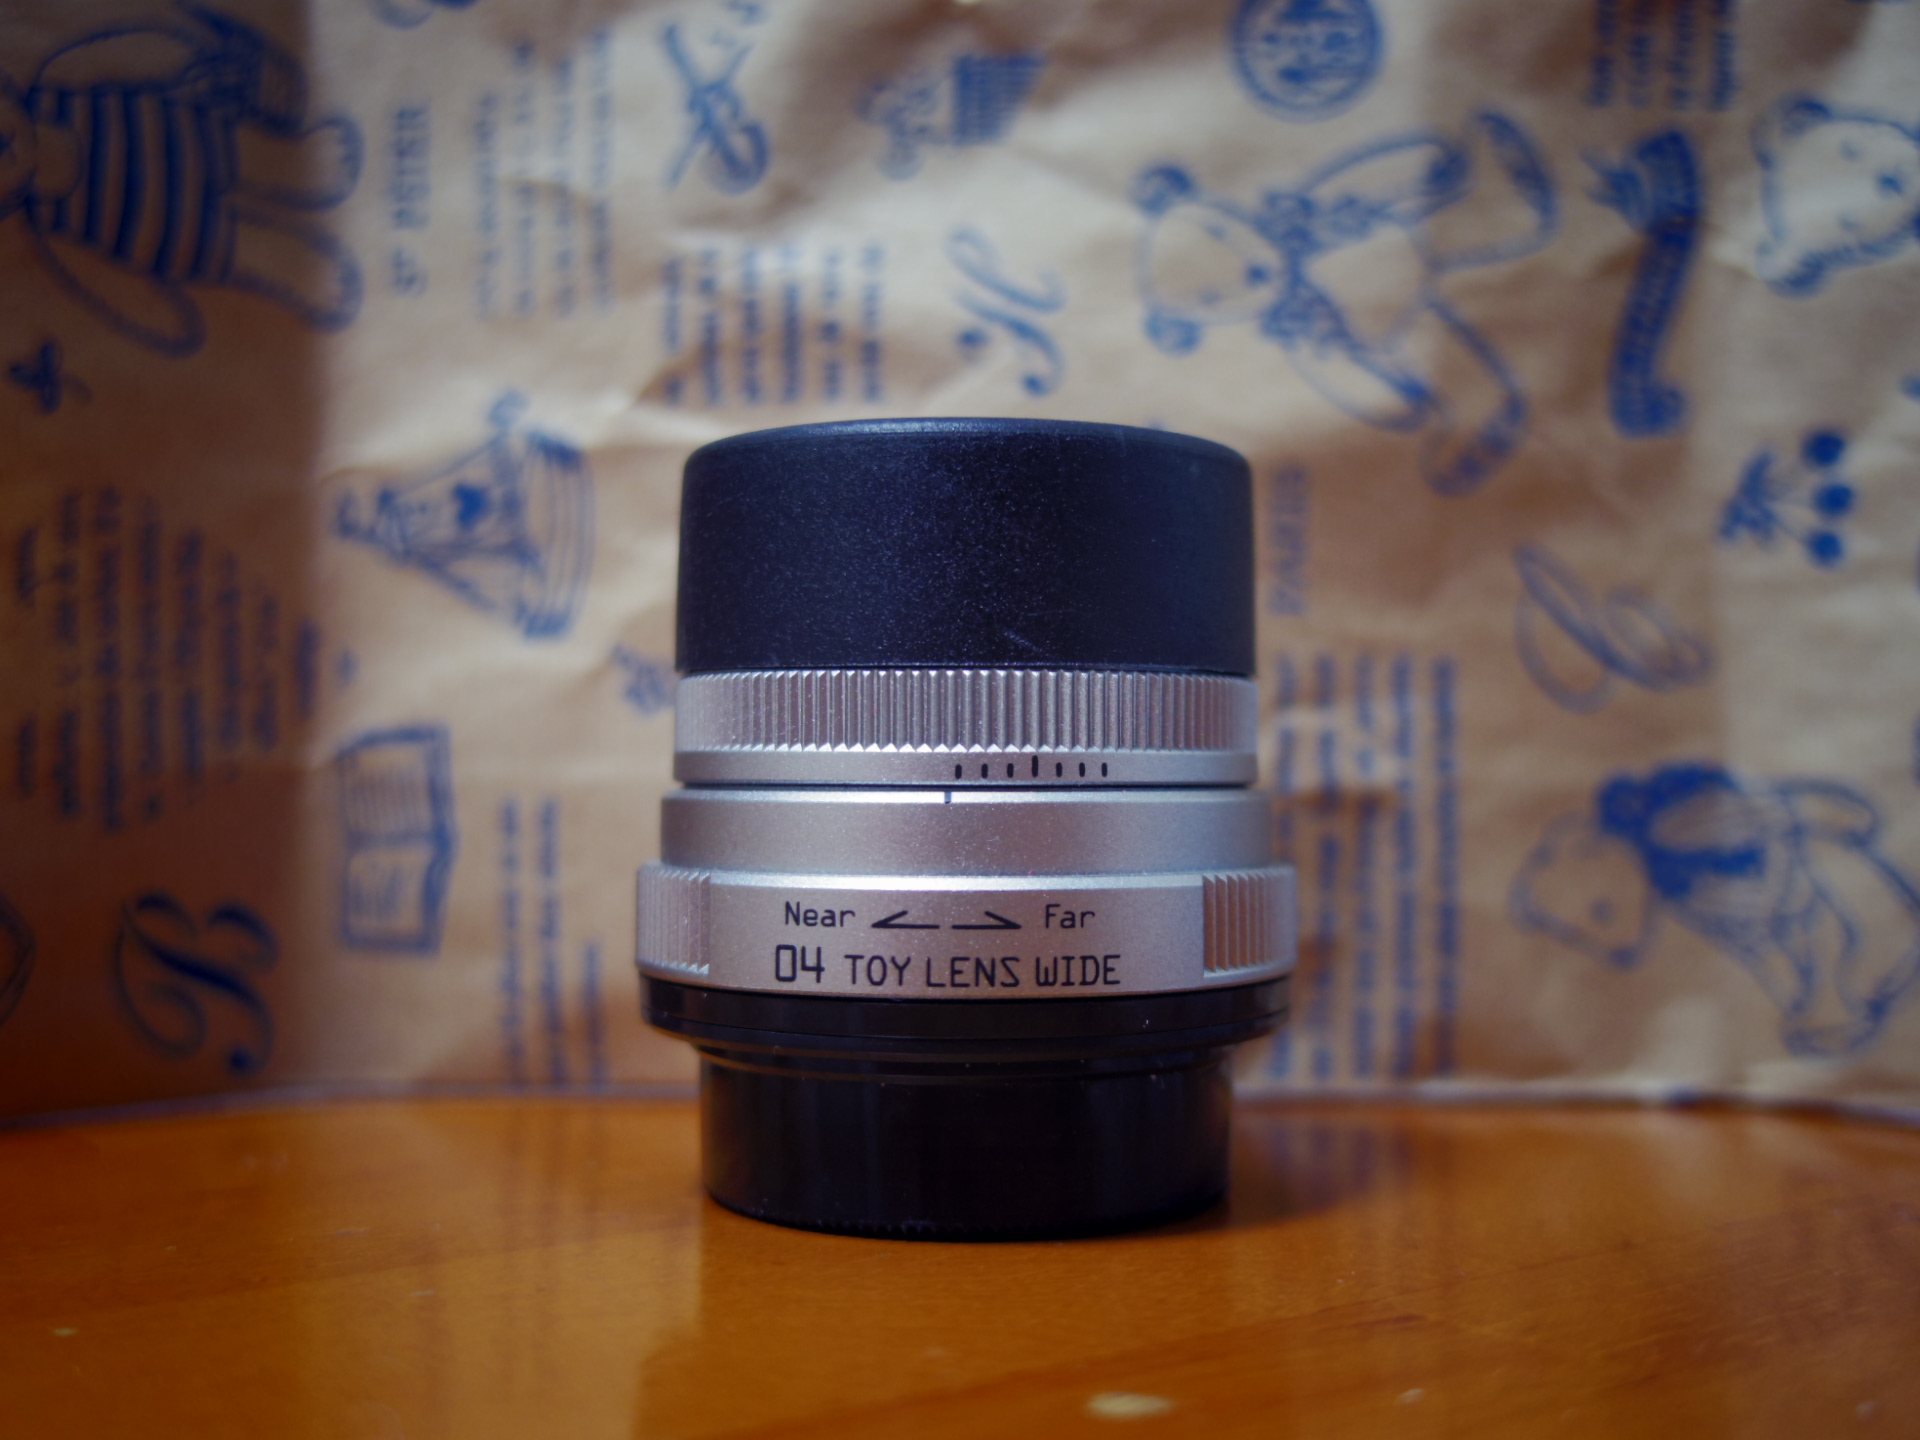 PENTAX 04 TOY LENS WIDE 6.3mm F7.1 を購入しました。